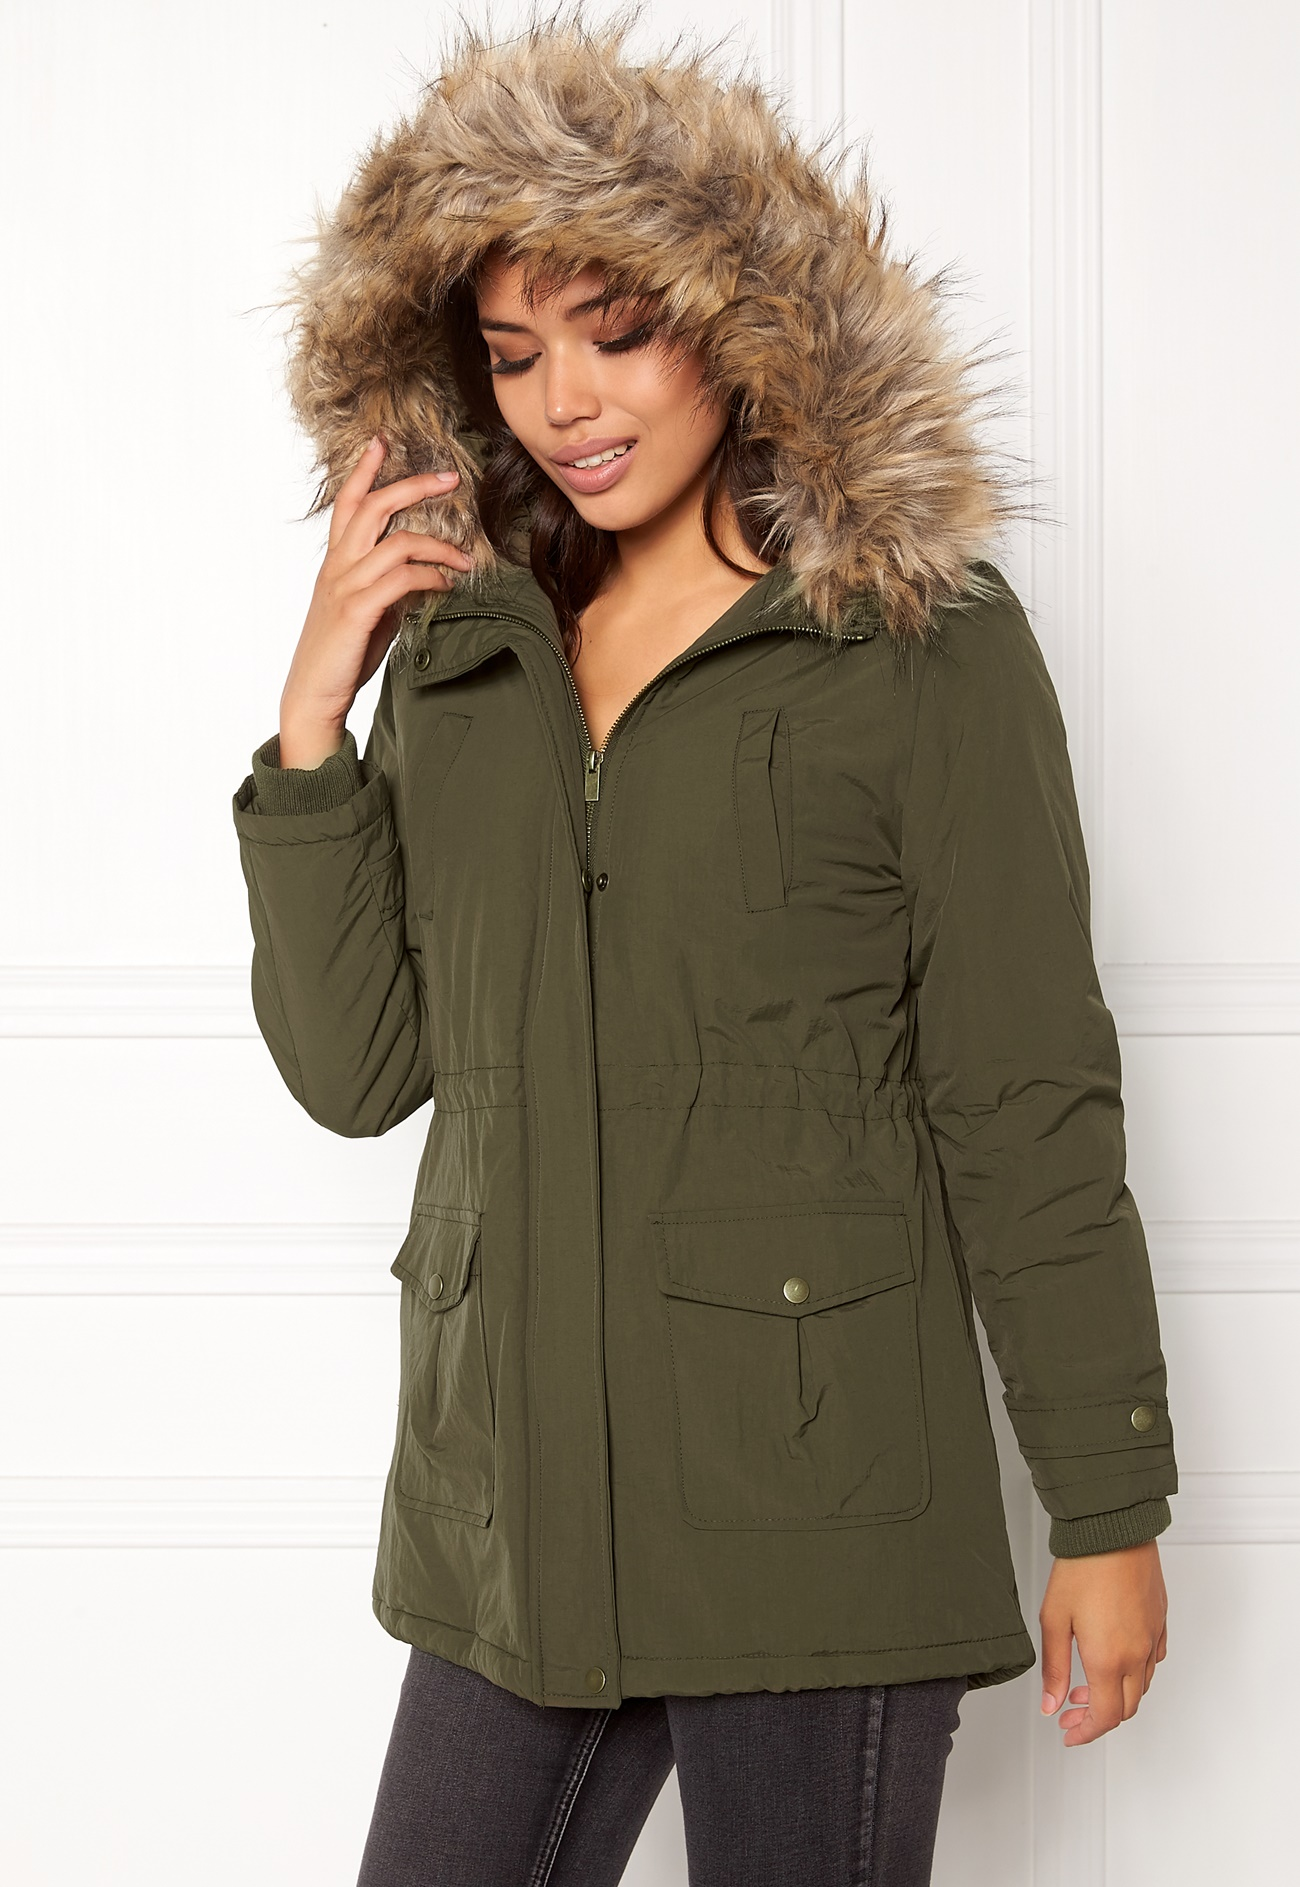 New Look khaki Faux Fur Hooded Jacket for Women Online Shopping in Dubai, Abu Dhabi, UAE - NEAT33SFU - Free Next Day Delivery day Exchange, Cash On Delivery.